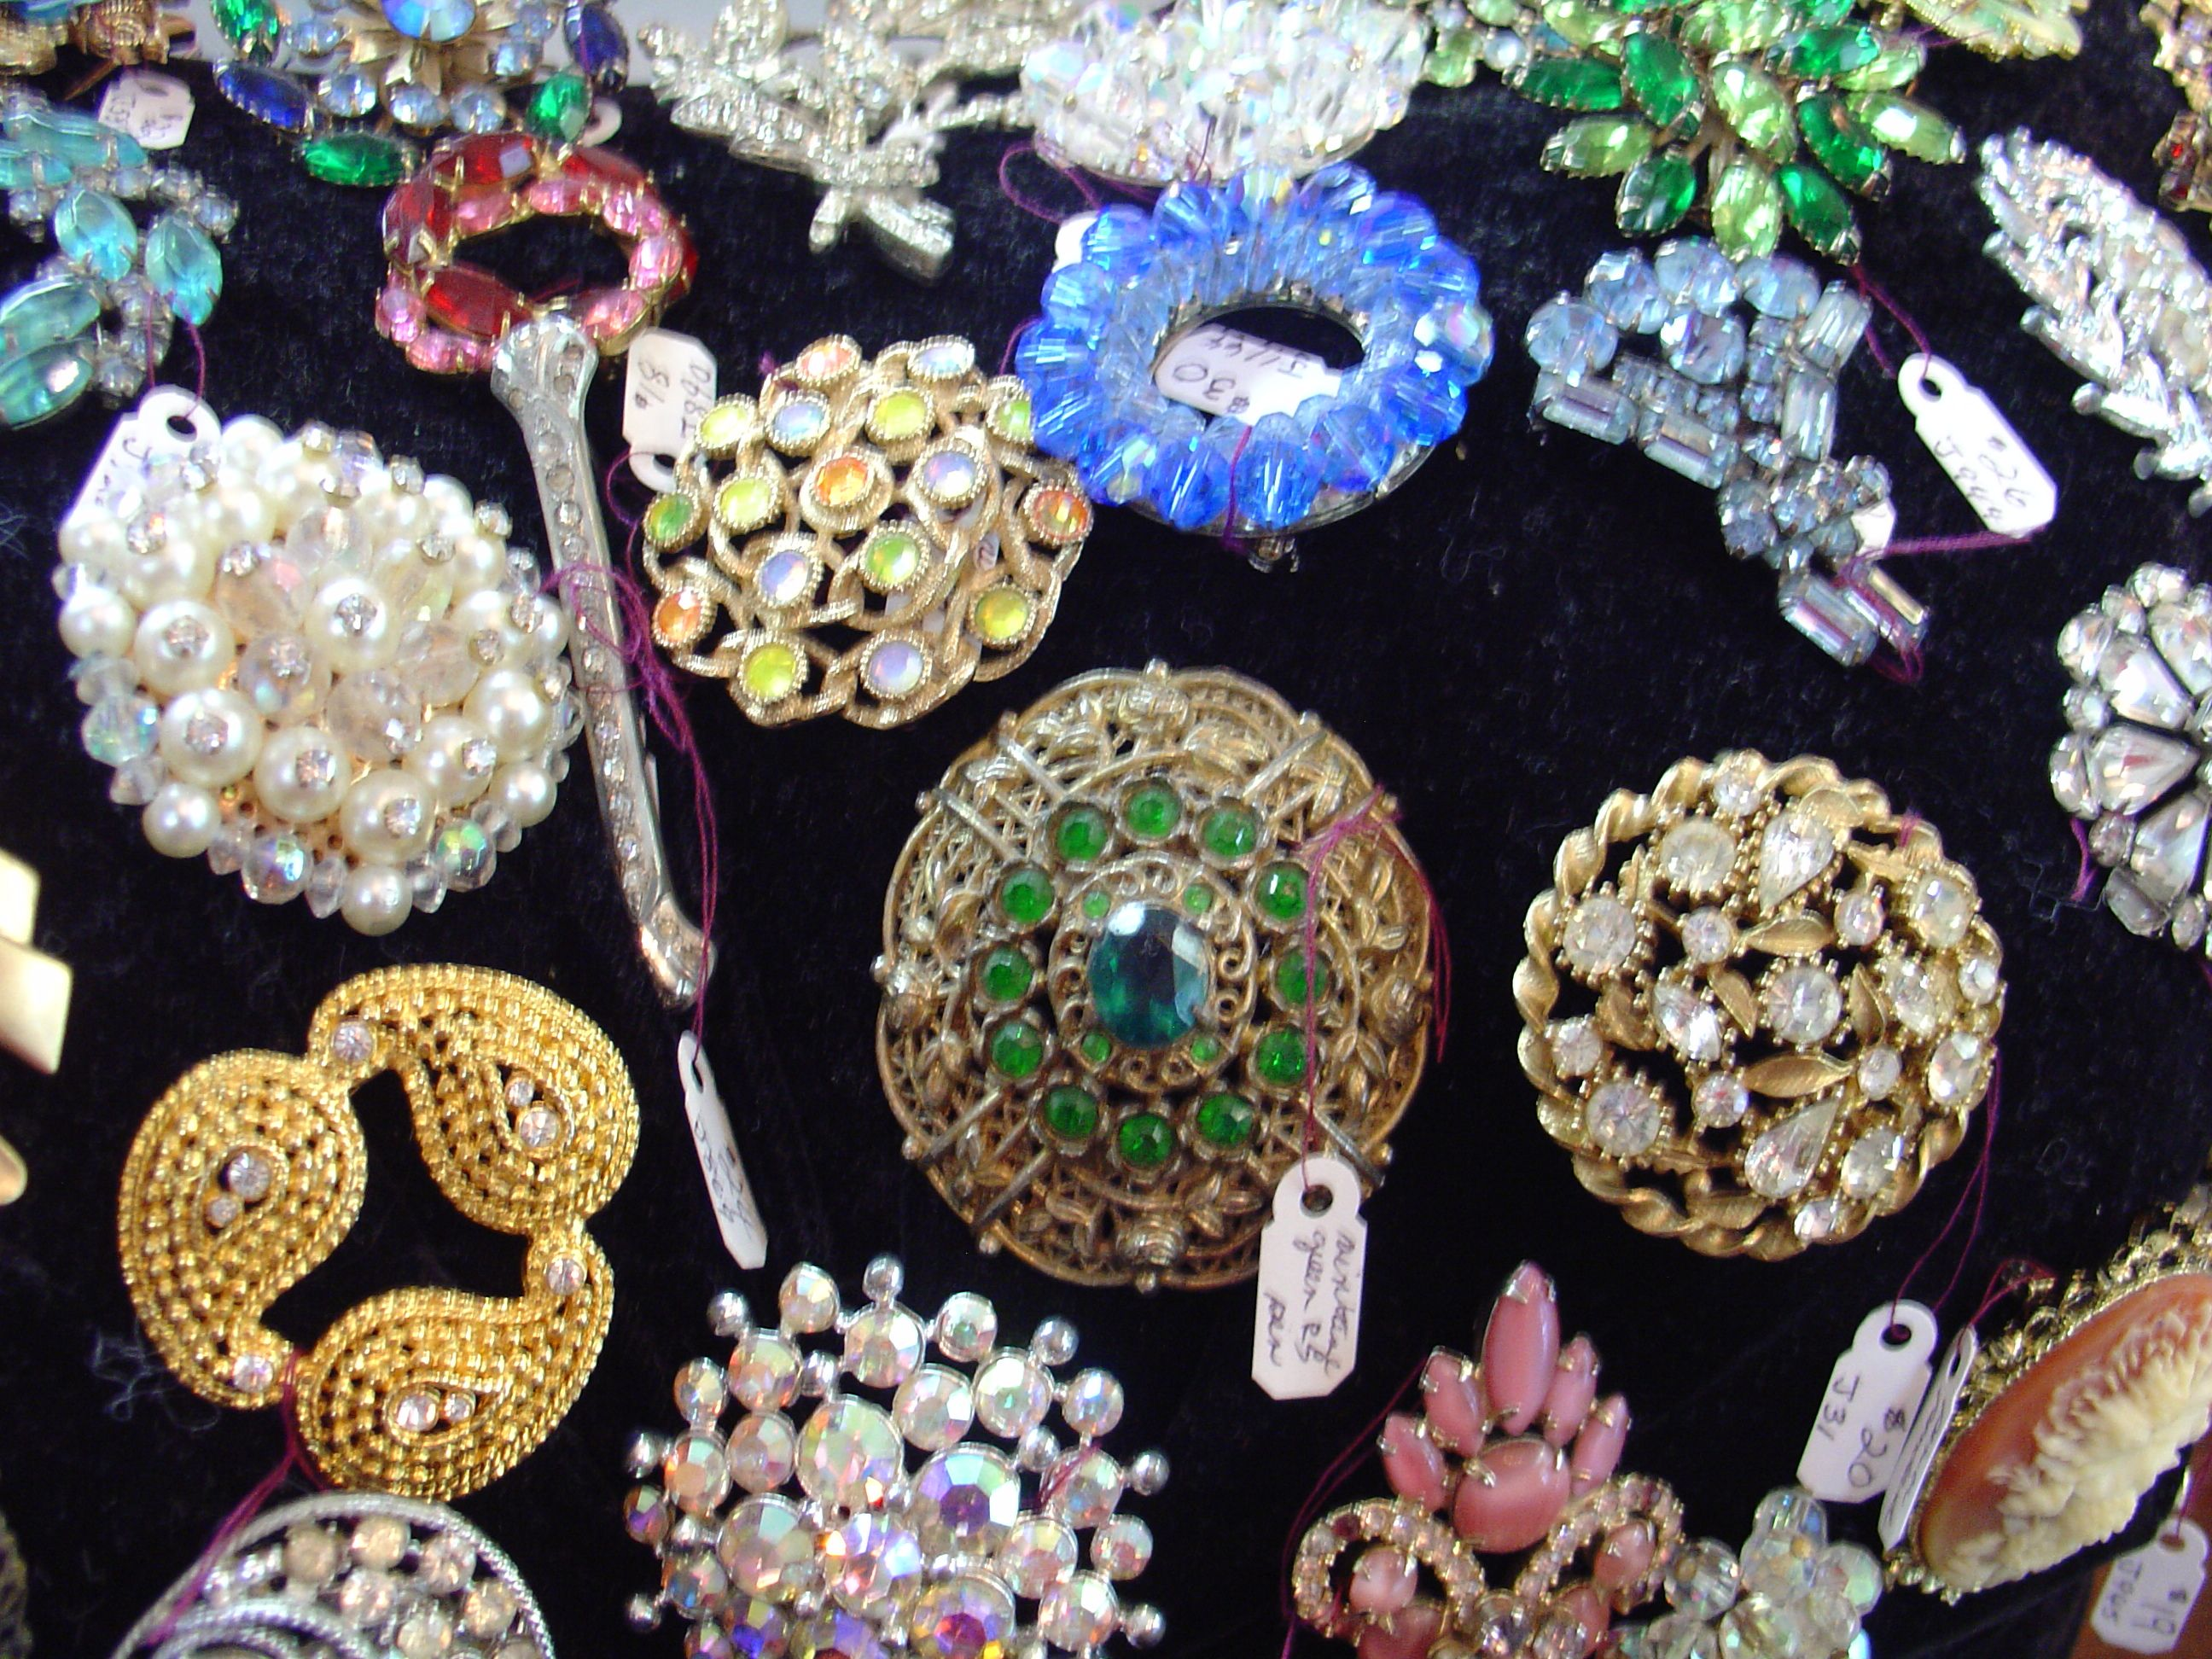 Vintage jewelry #vintagejewelry http://www.camillesantiqueboutique.com/vintage-clothing--accessories.html